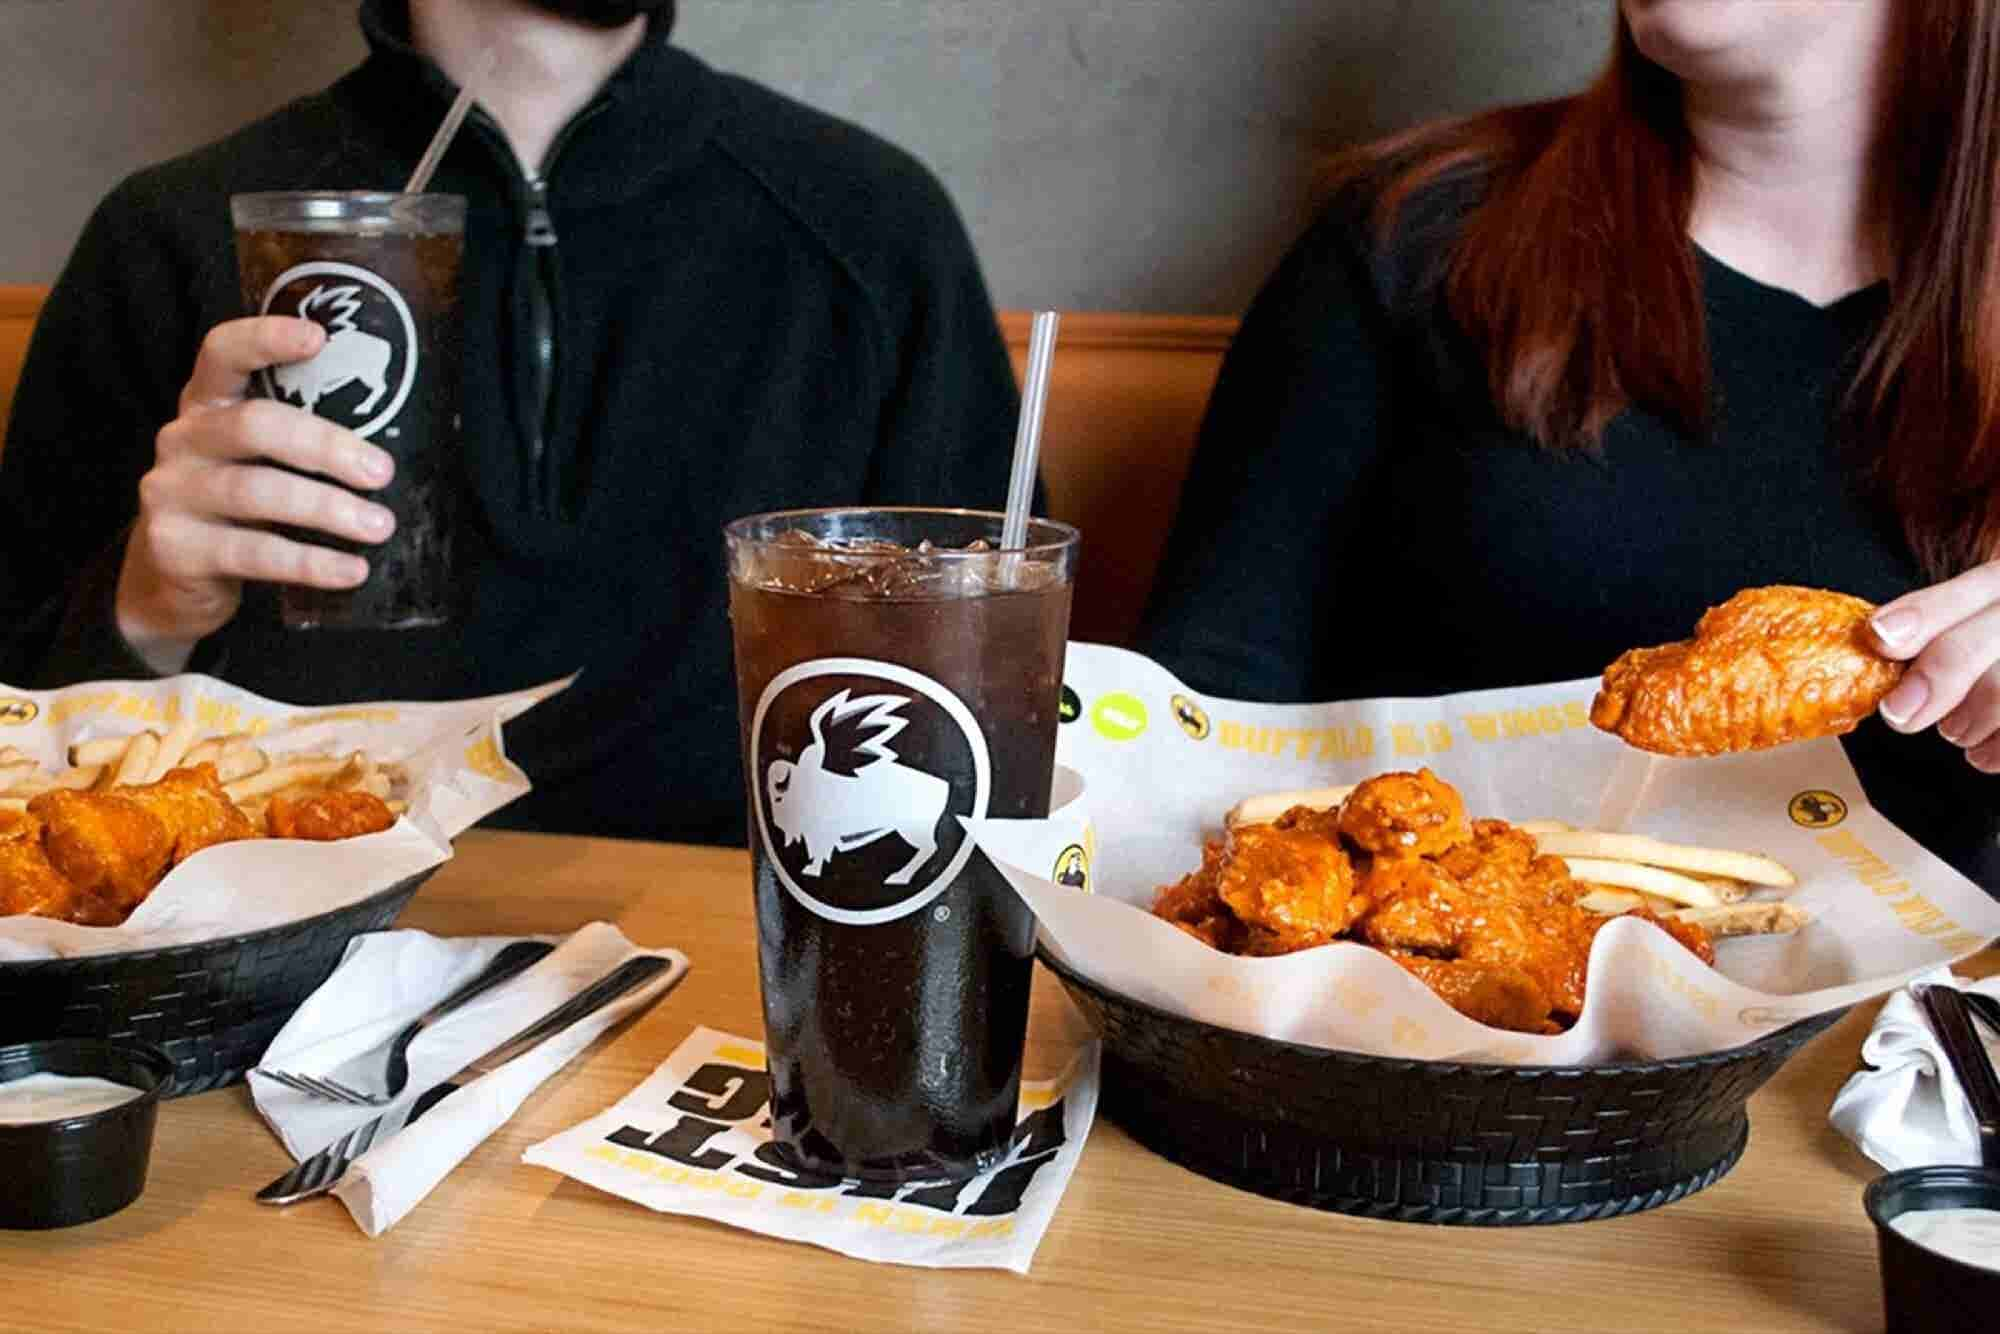 The Top 20 Fast-Food Franchises of 2016